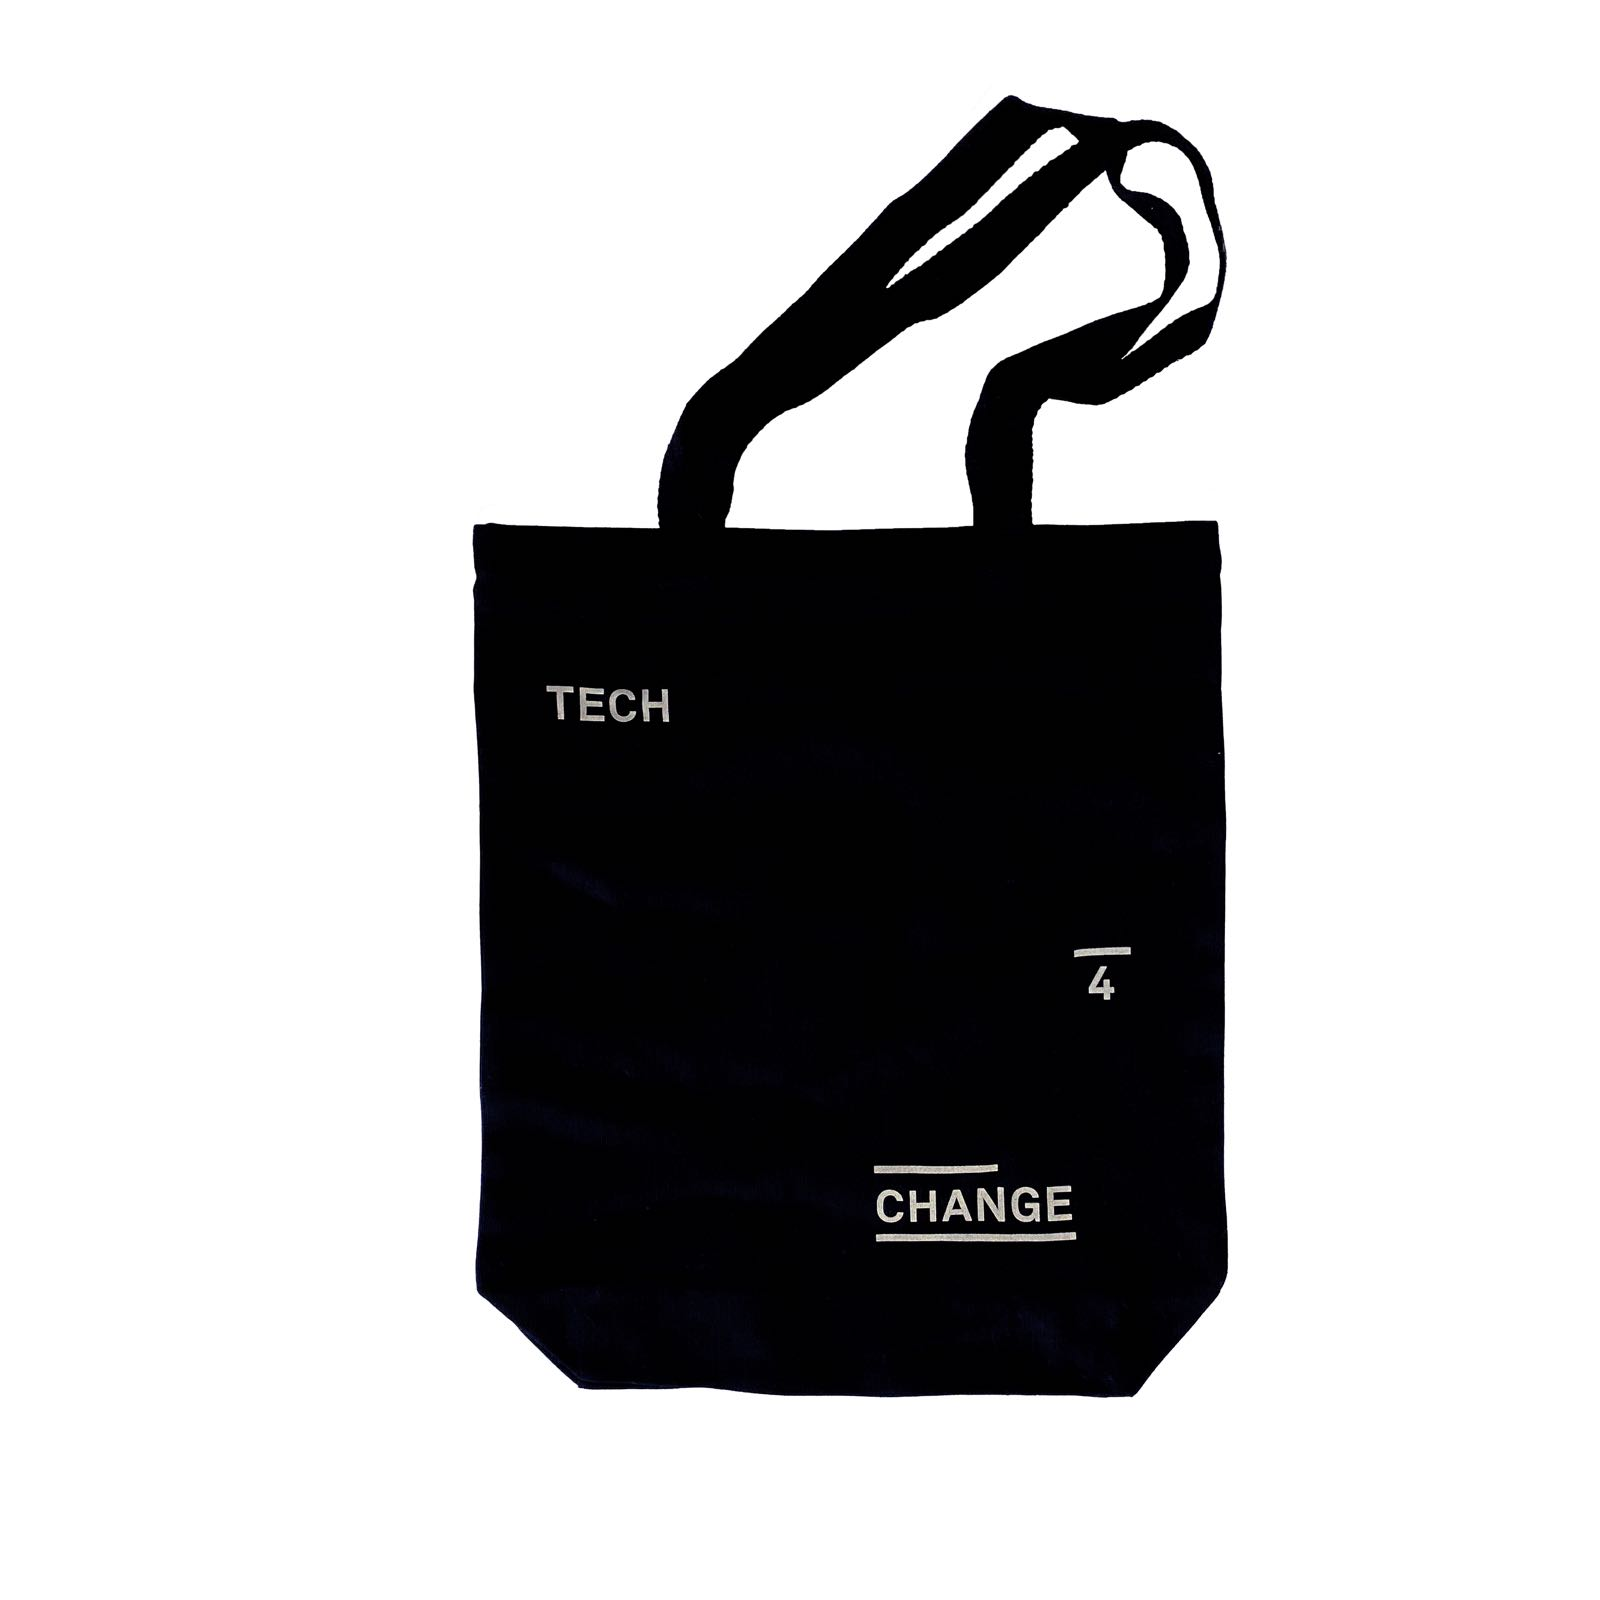 Tech 4 change tote bag